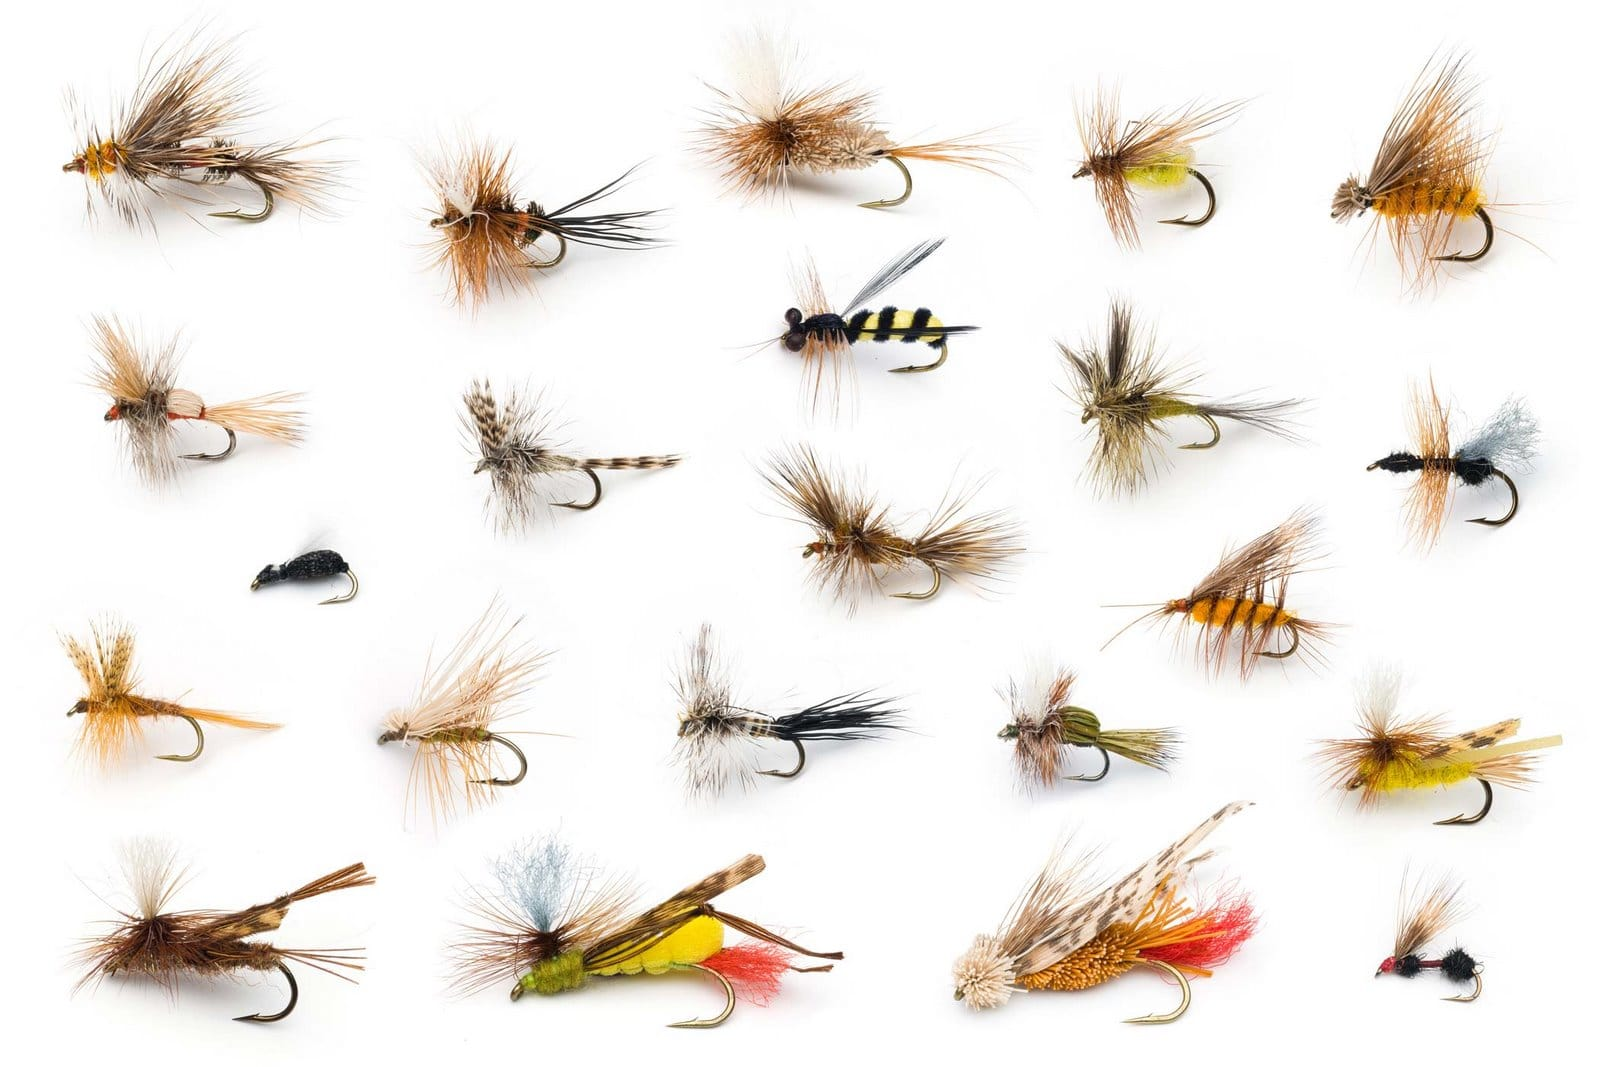 assortment of fly fishing flies lures